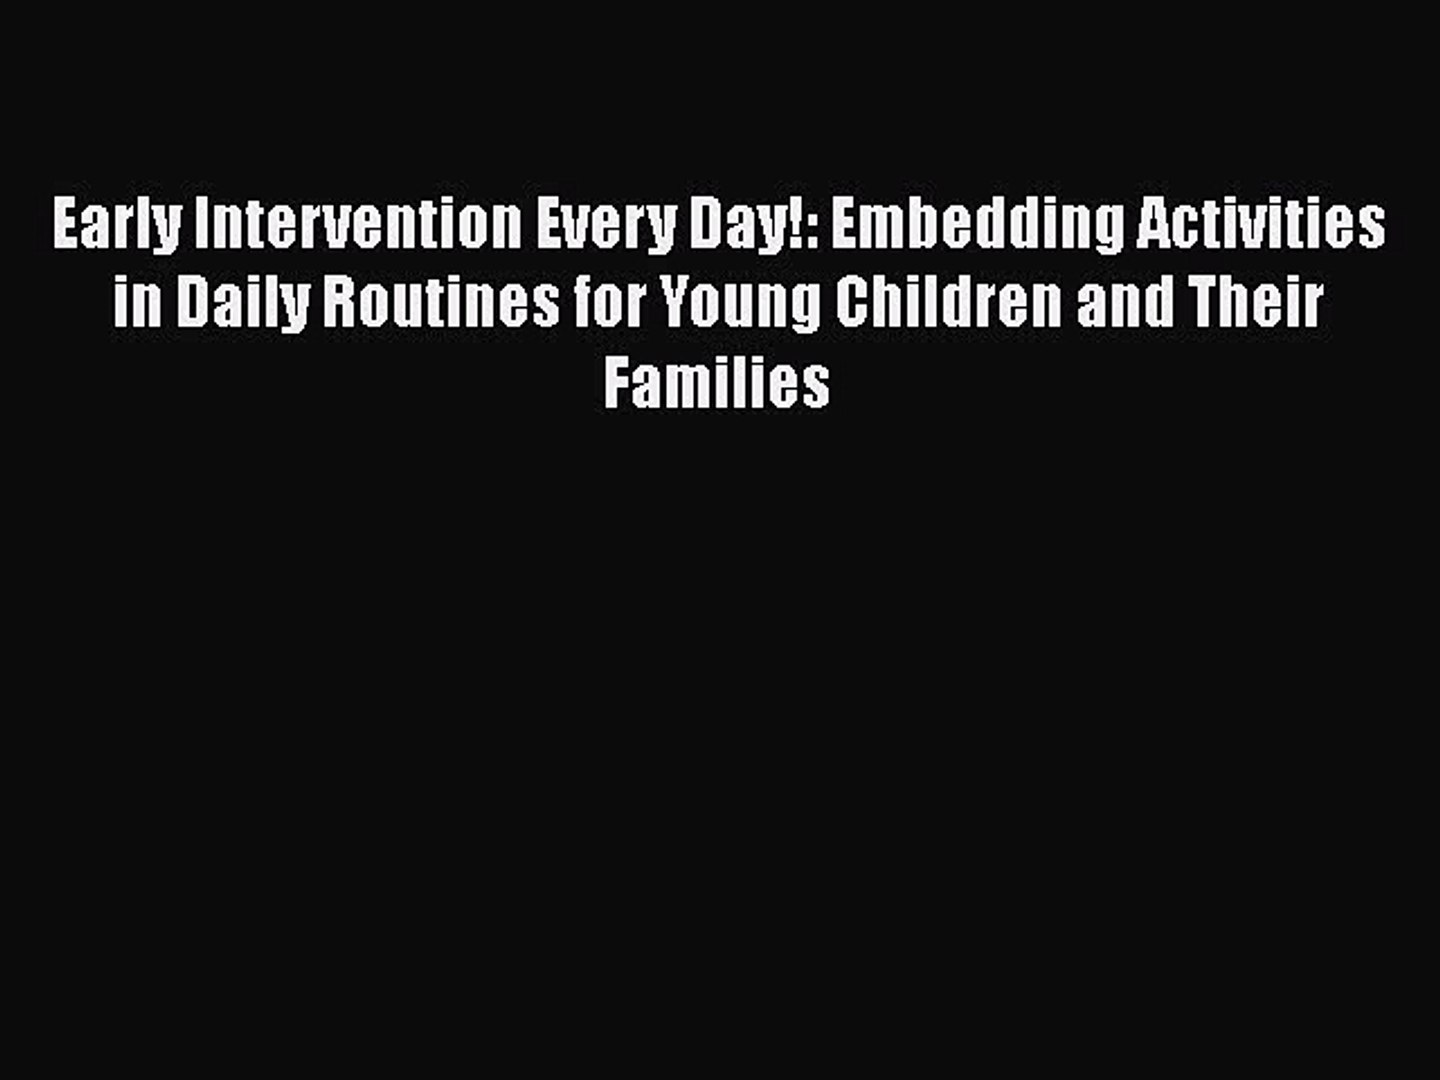 [PDF] Early Intervention Every Day!: Embedding Activities in Daily Routines for Young Children